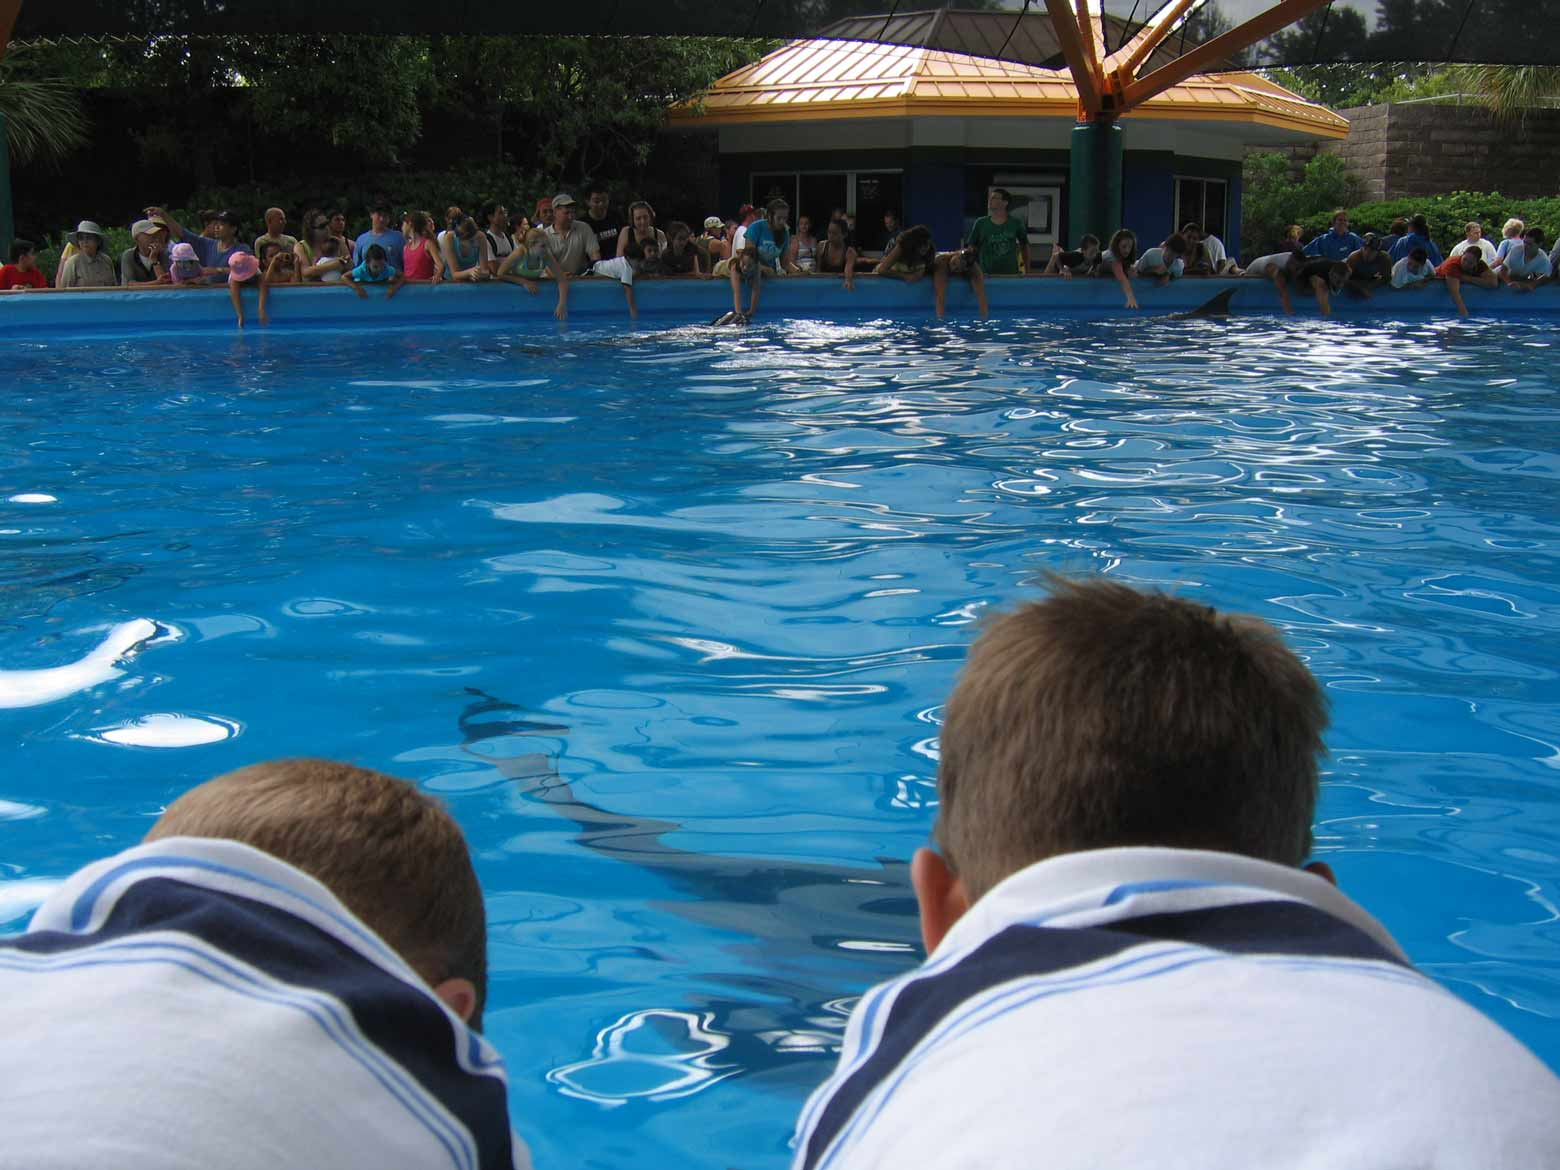 Sea World San Antonio then and now! Come see all the changes the park has made, as well as a walk down memory lane!